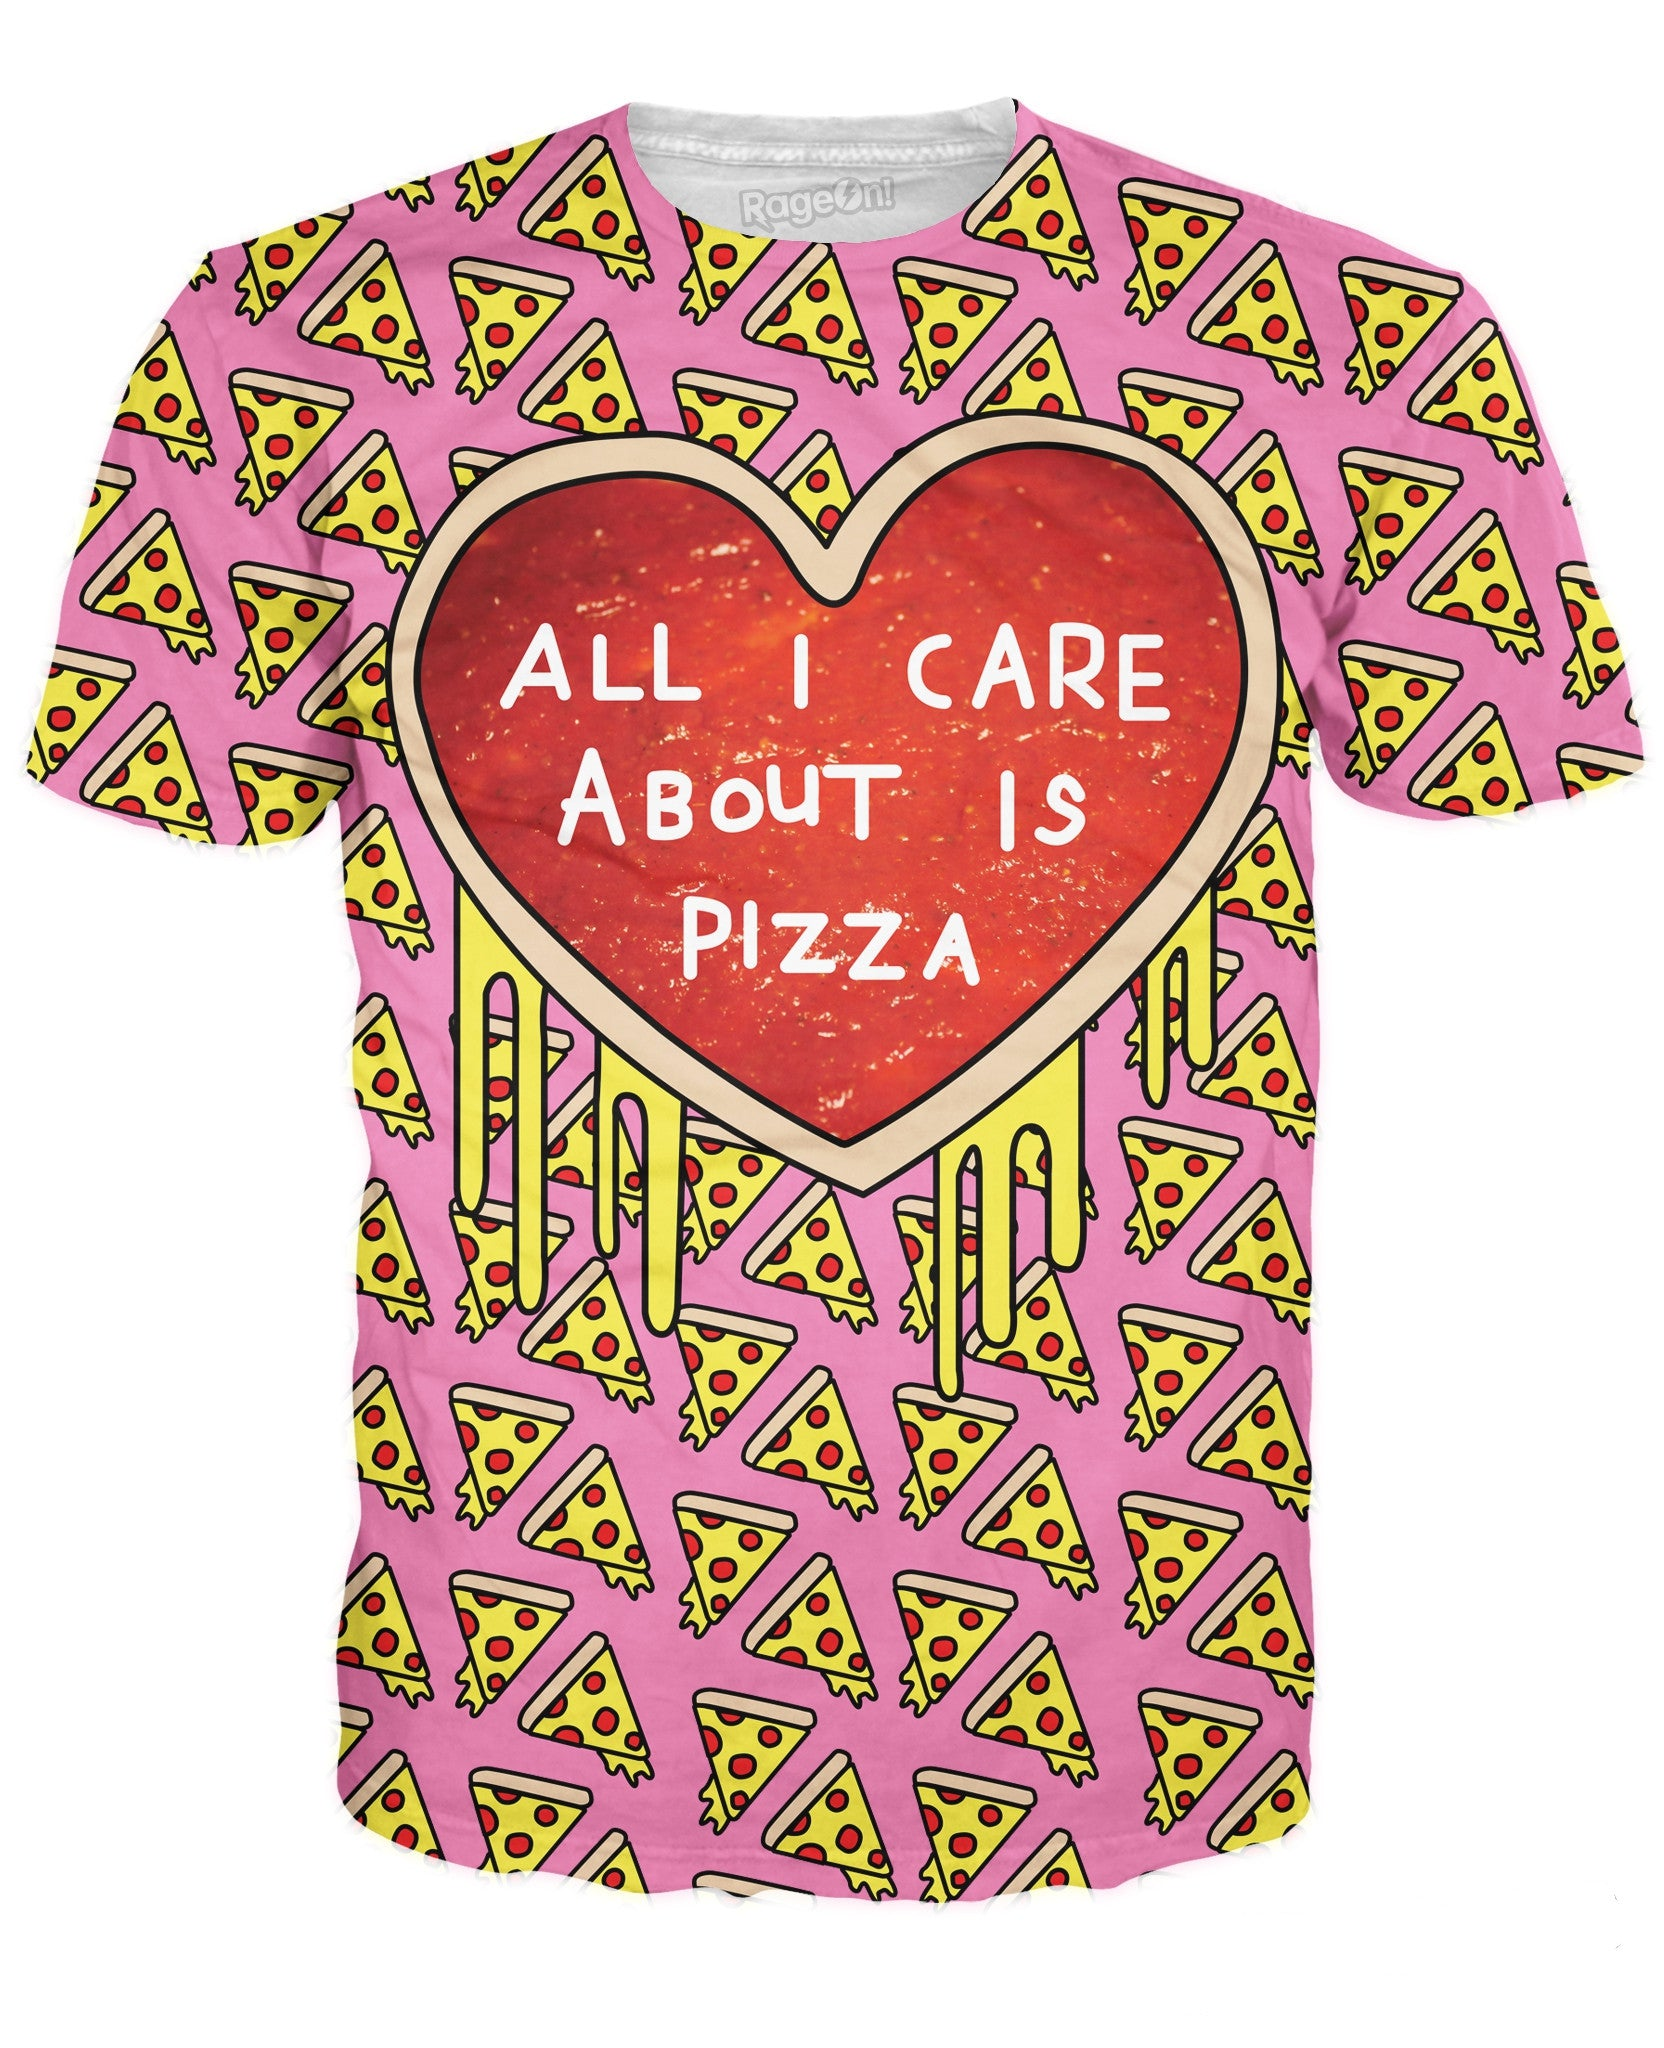 All I Care About is Pizza T-Shirt - TShirtsRUS.co